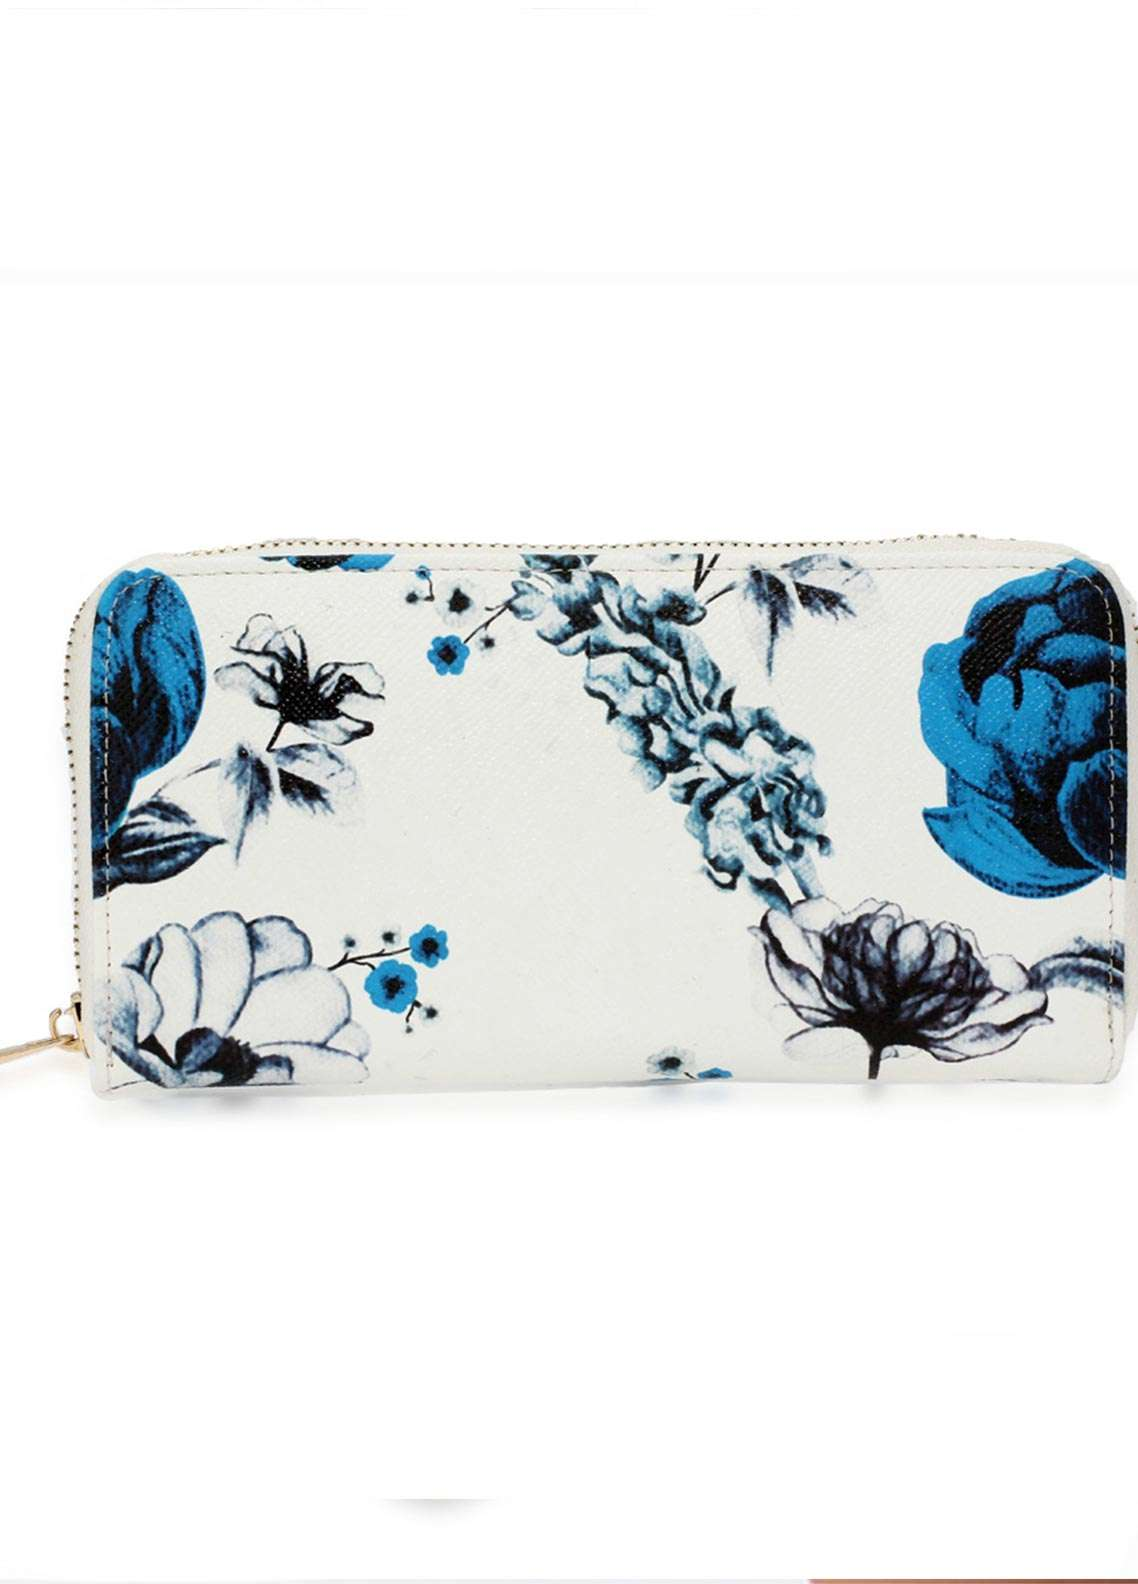 Anna Grace London Faux Leather Wallet   for Women  Blue with Smooth Texture|Grainy